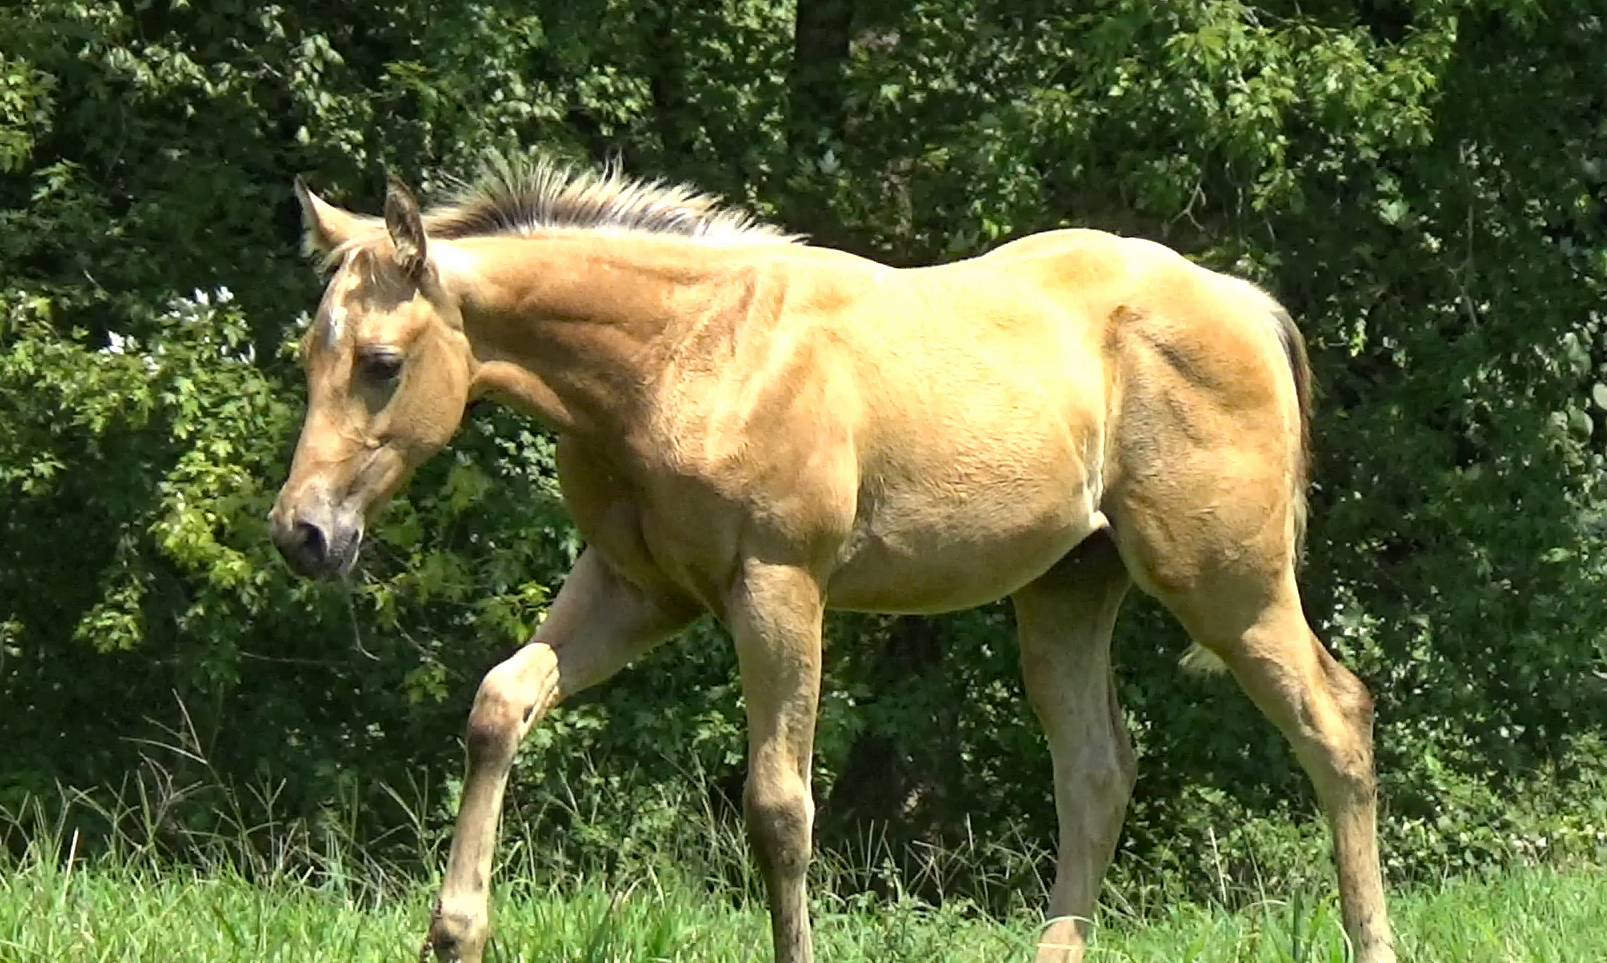 Steel N Starlite, 2019 AQHA Colt - This colt is athletic and agile and as sweet as can be. He has the great buckskin color to highlight his beautiful build. Refined in the head and neck, pretty face and already showing a lot of muscle. He will be a great working western and ranch horse. Great pedigree with Poco, Greys Starlight, Reminic, Smart Little Lena and Doc Bar.